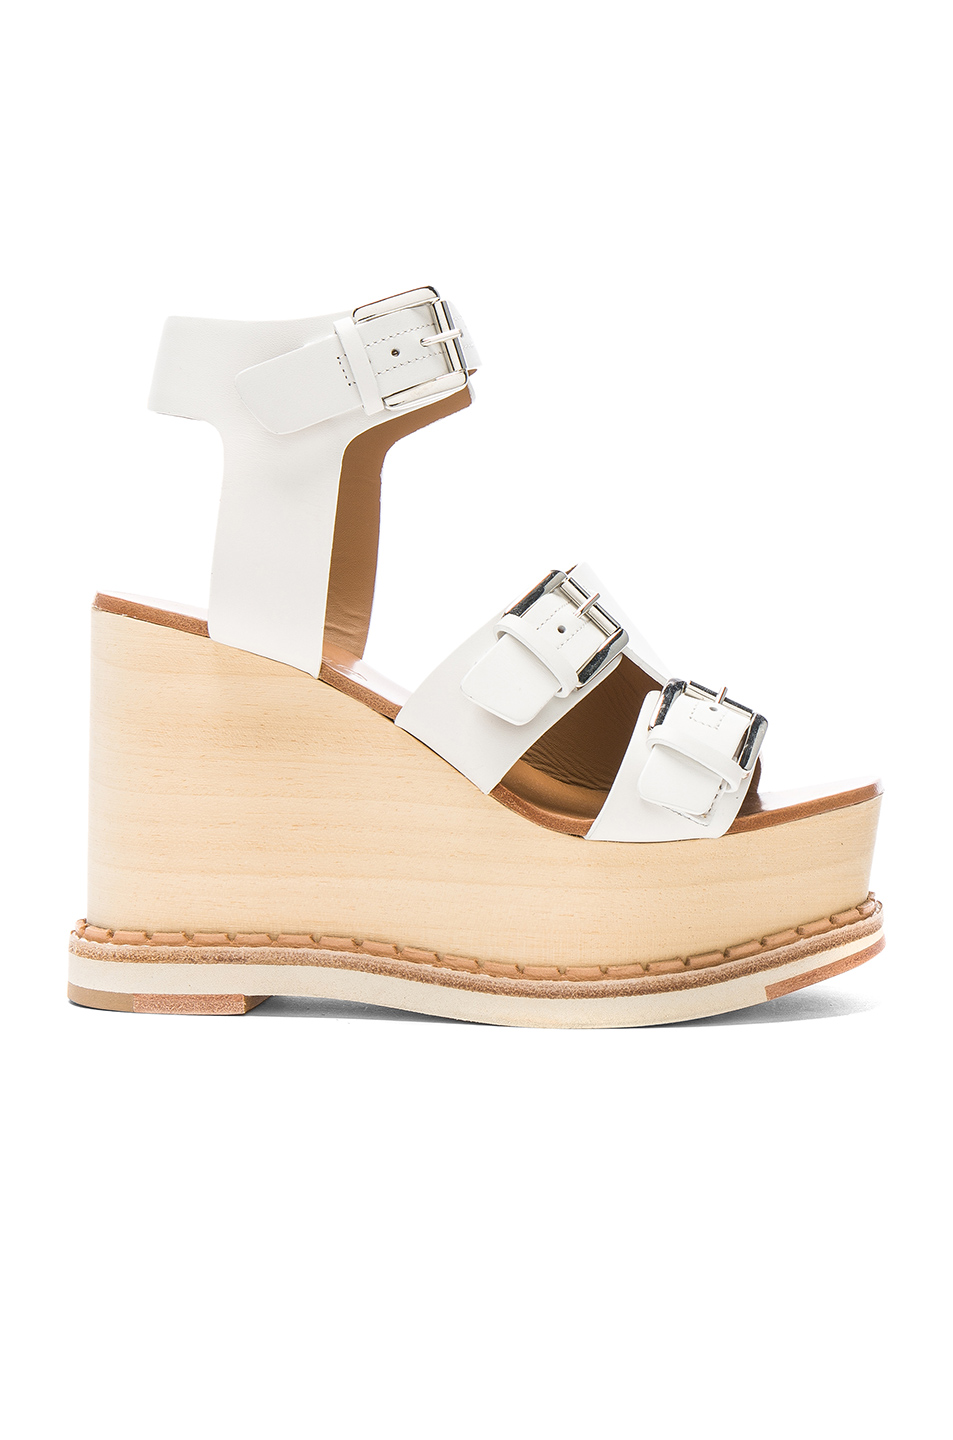 Flamingos Leather Holly Wedges in White